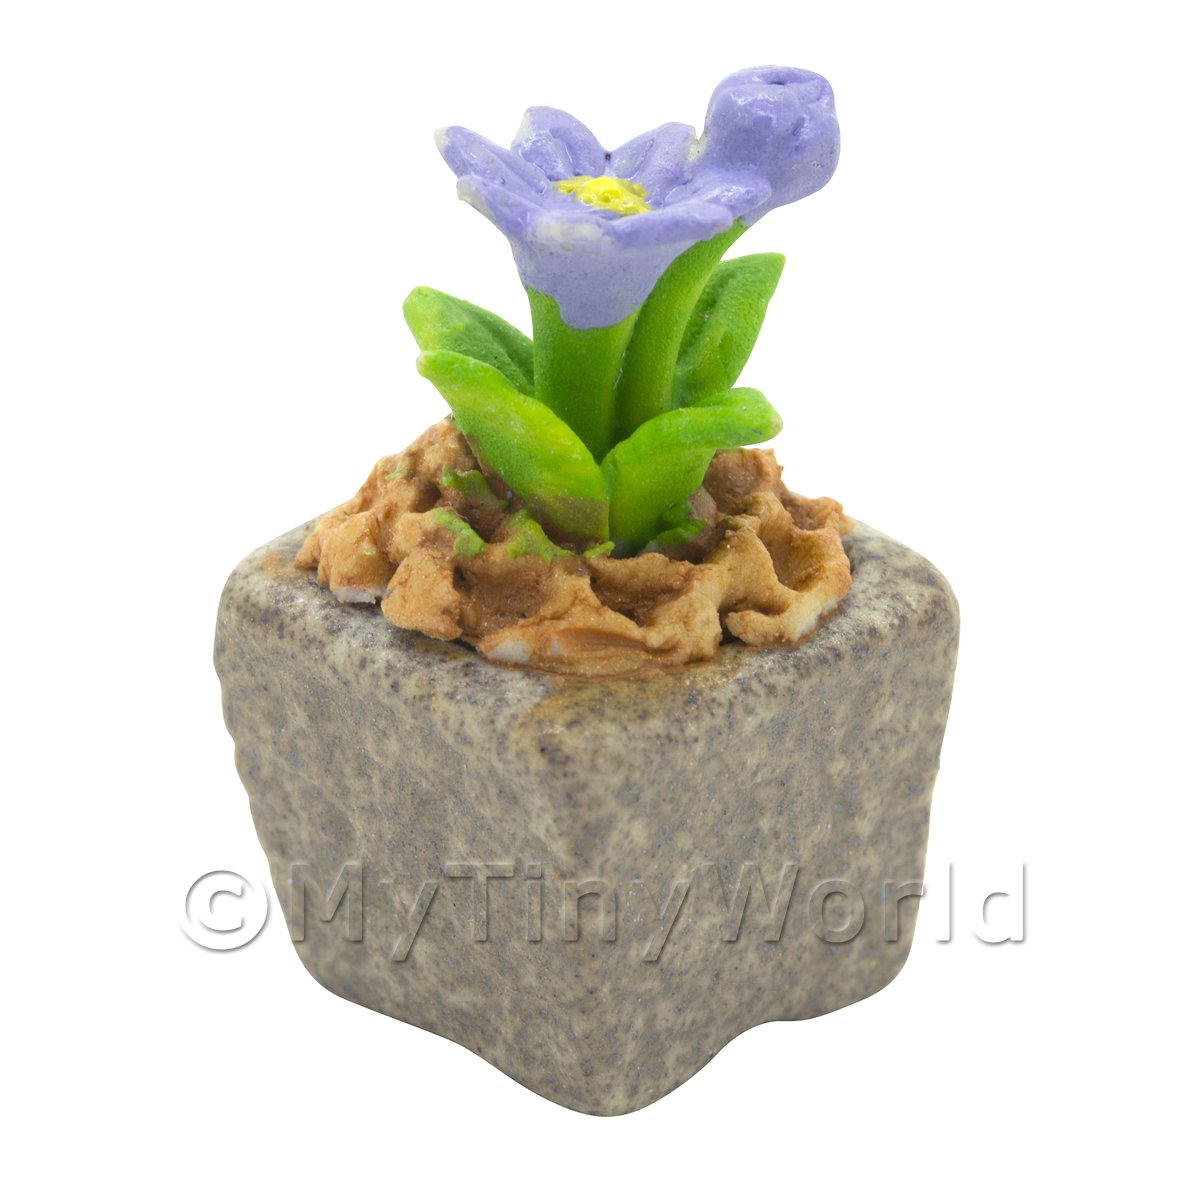 Miniature Handmade Violet Coloured Ceramic Flower (CFV18)